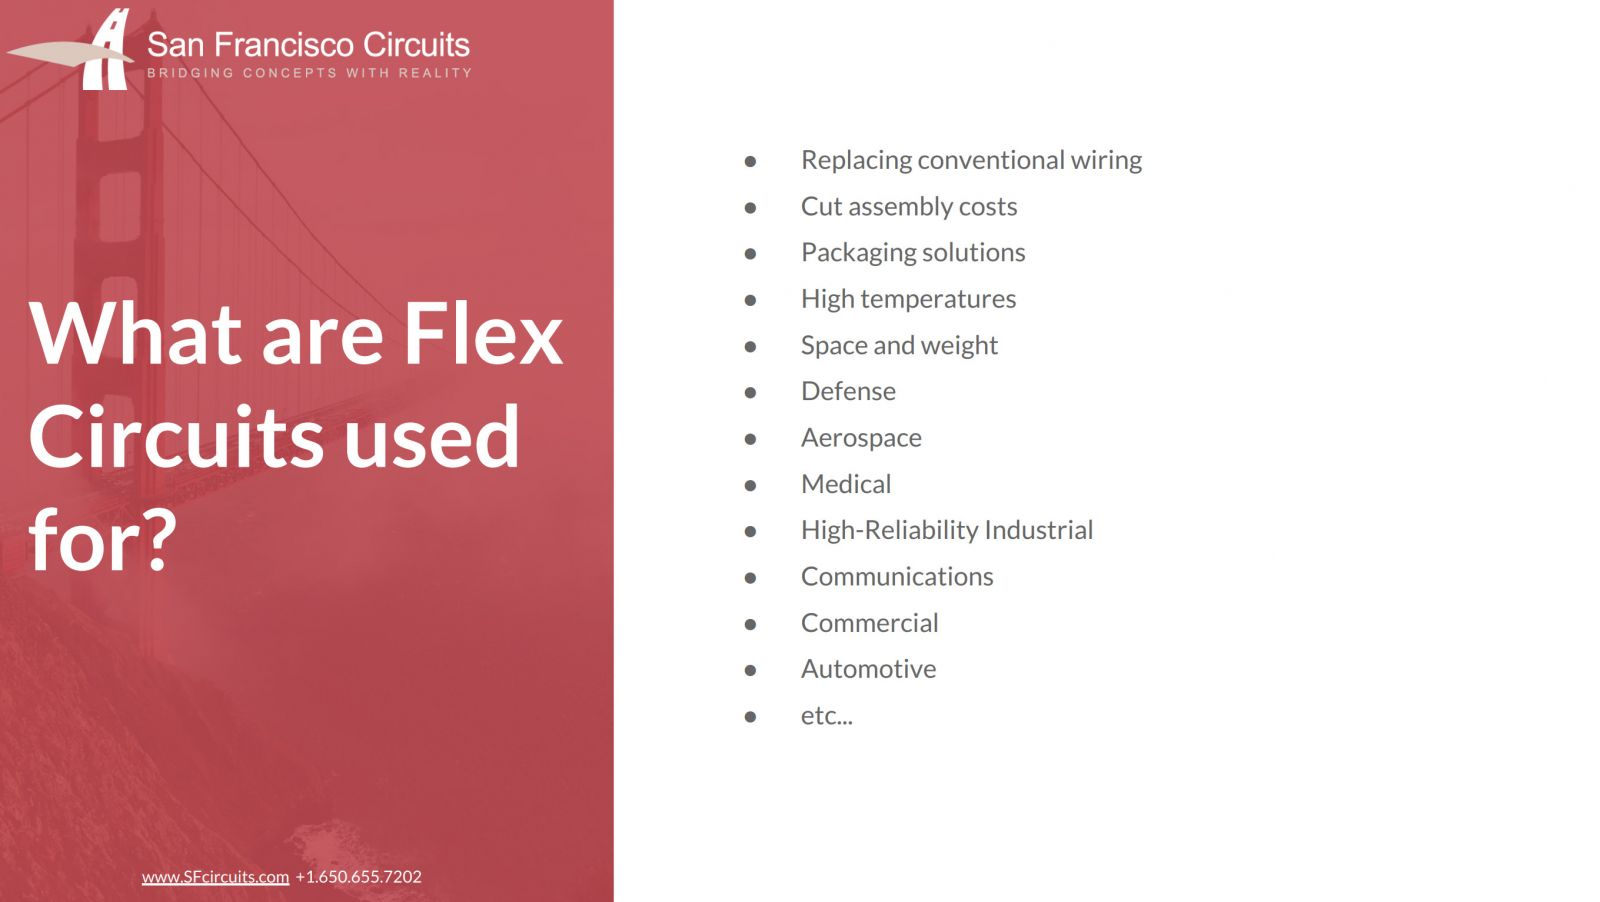 Pcb School Resources Industry Reference The Novice Guide To Designing Printed Circuit Boards By Solutions Check Out A Preview Of Sfcs Intro Flex Circuits